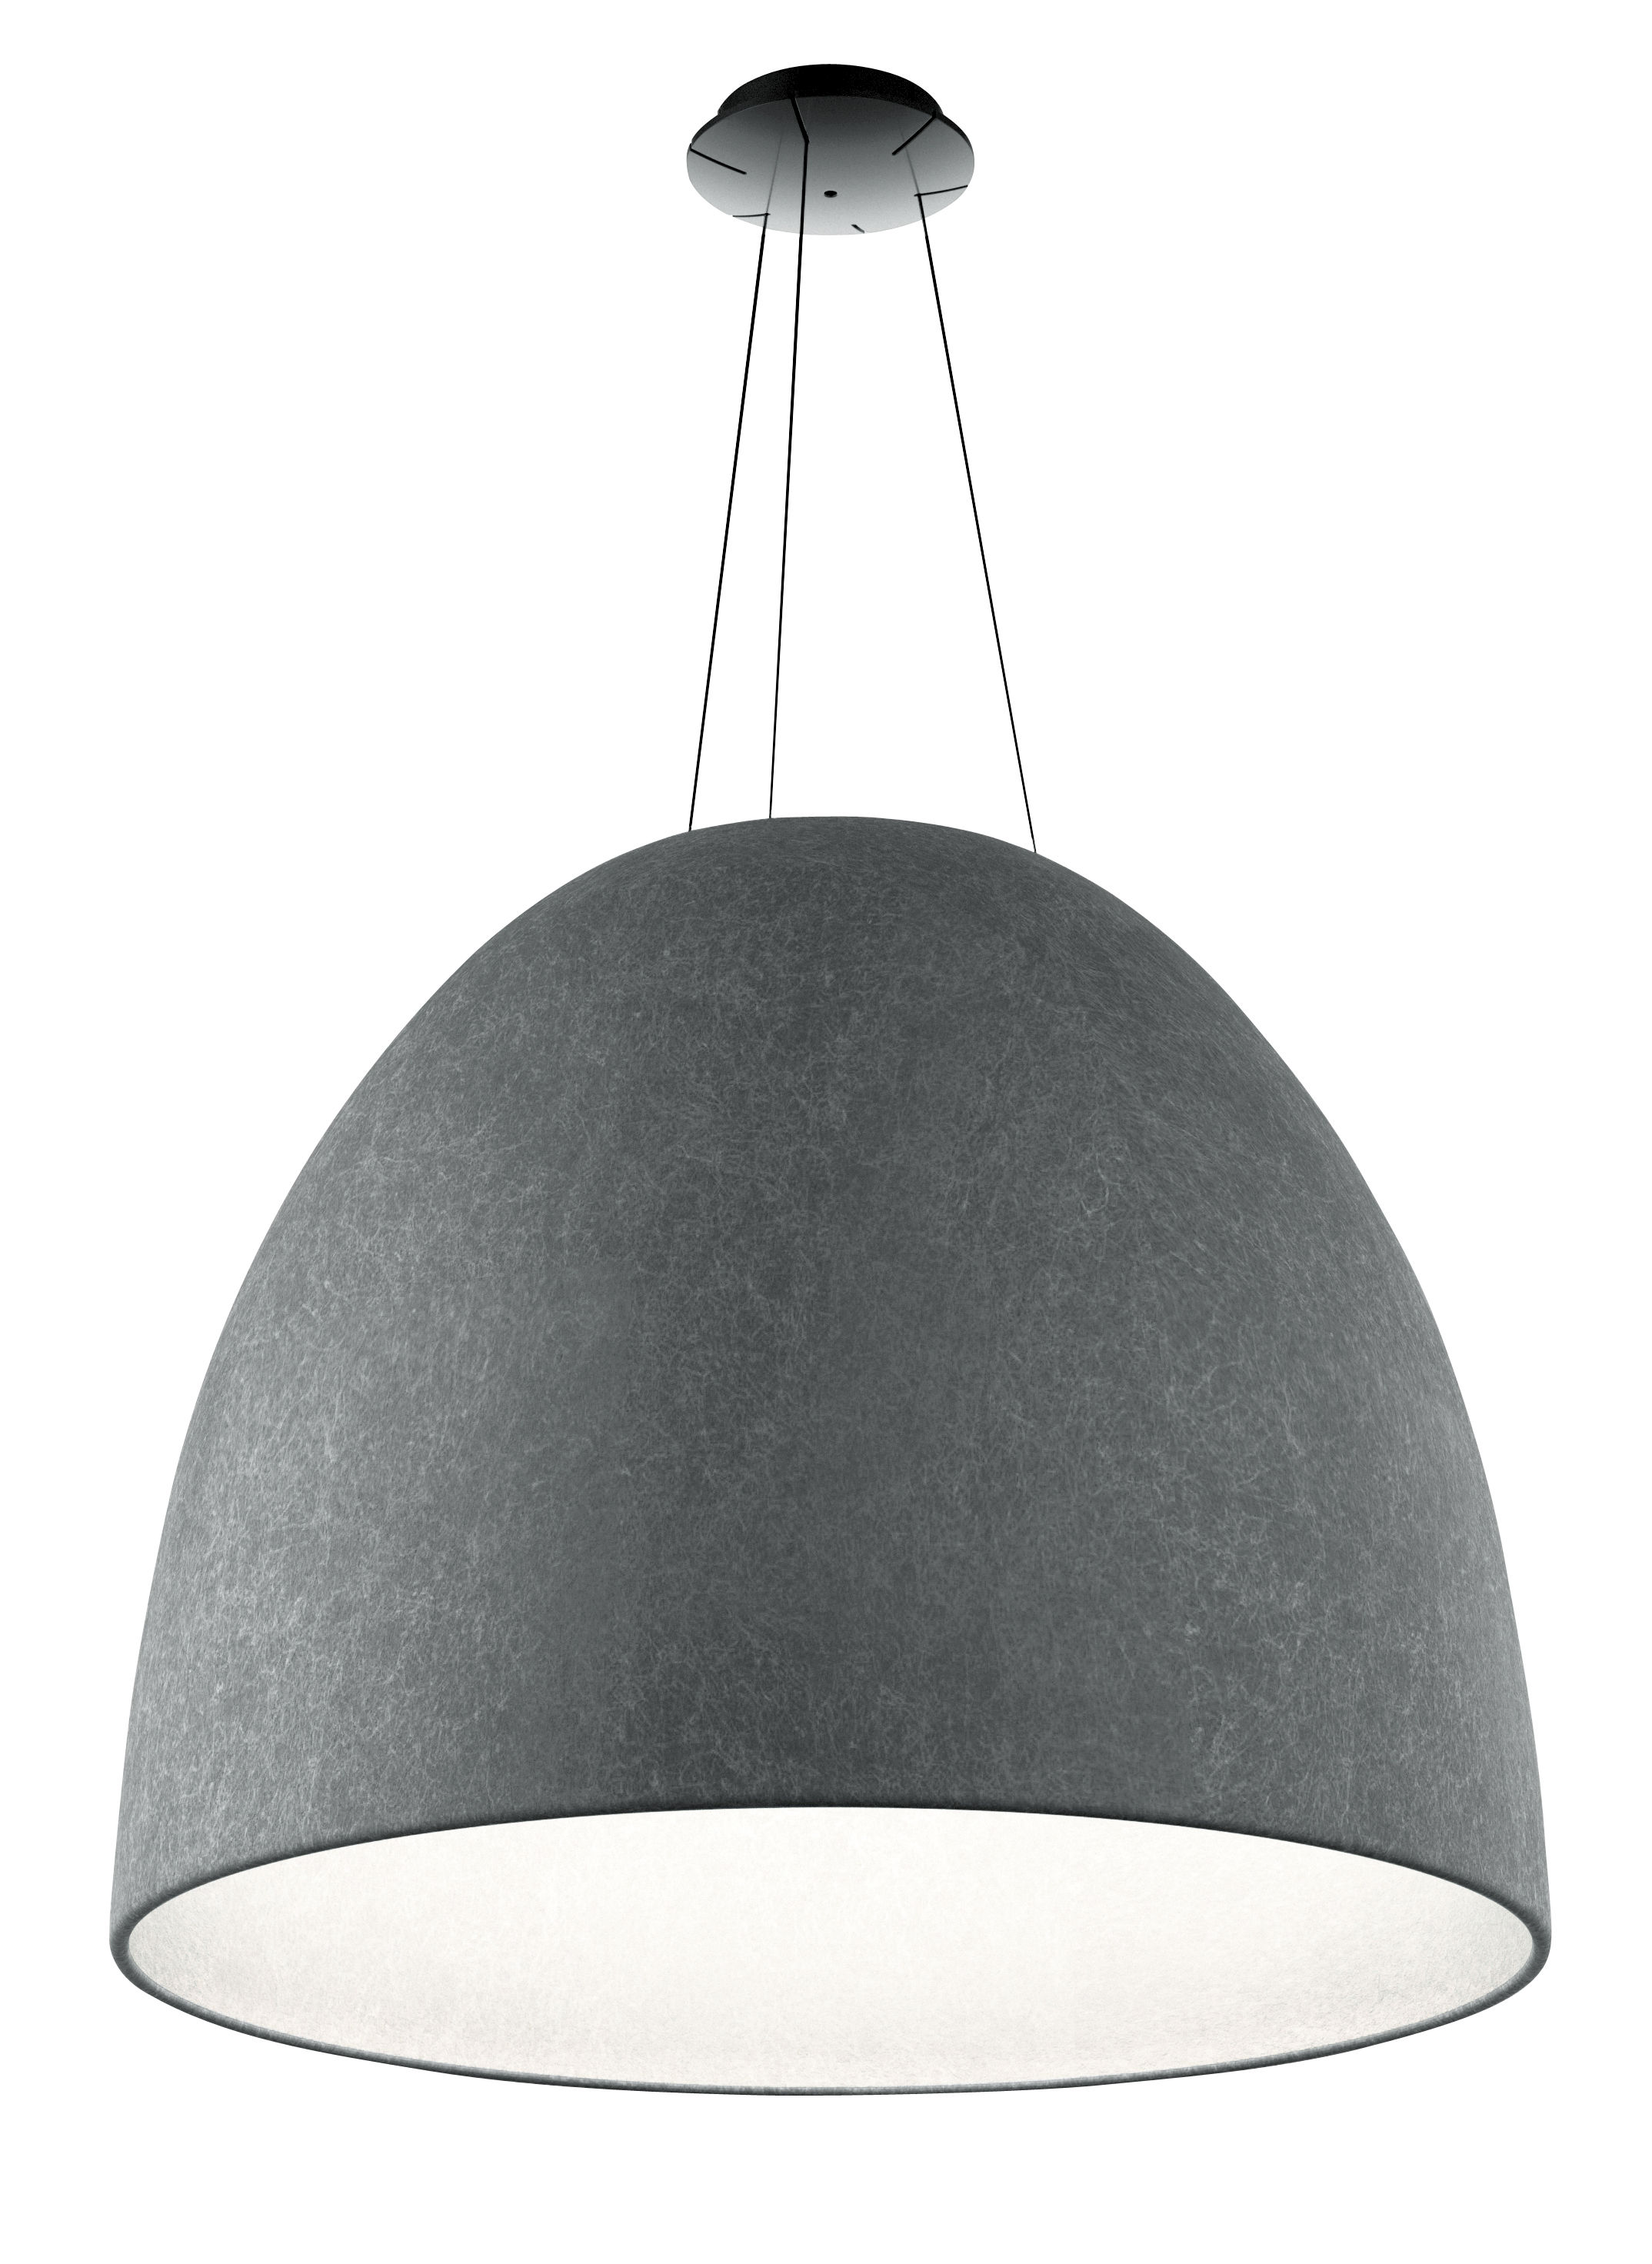 Suspension Ø Nur Led Acoustique Artemide Feutre 91 Cm USqpzMV